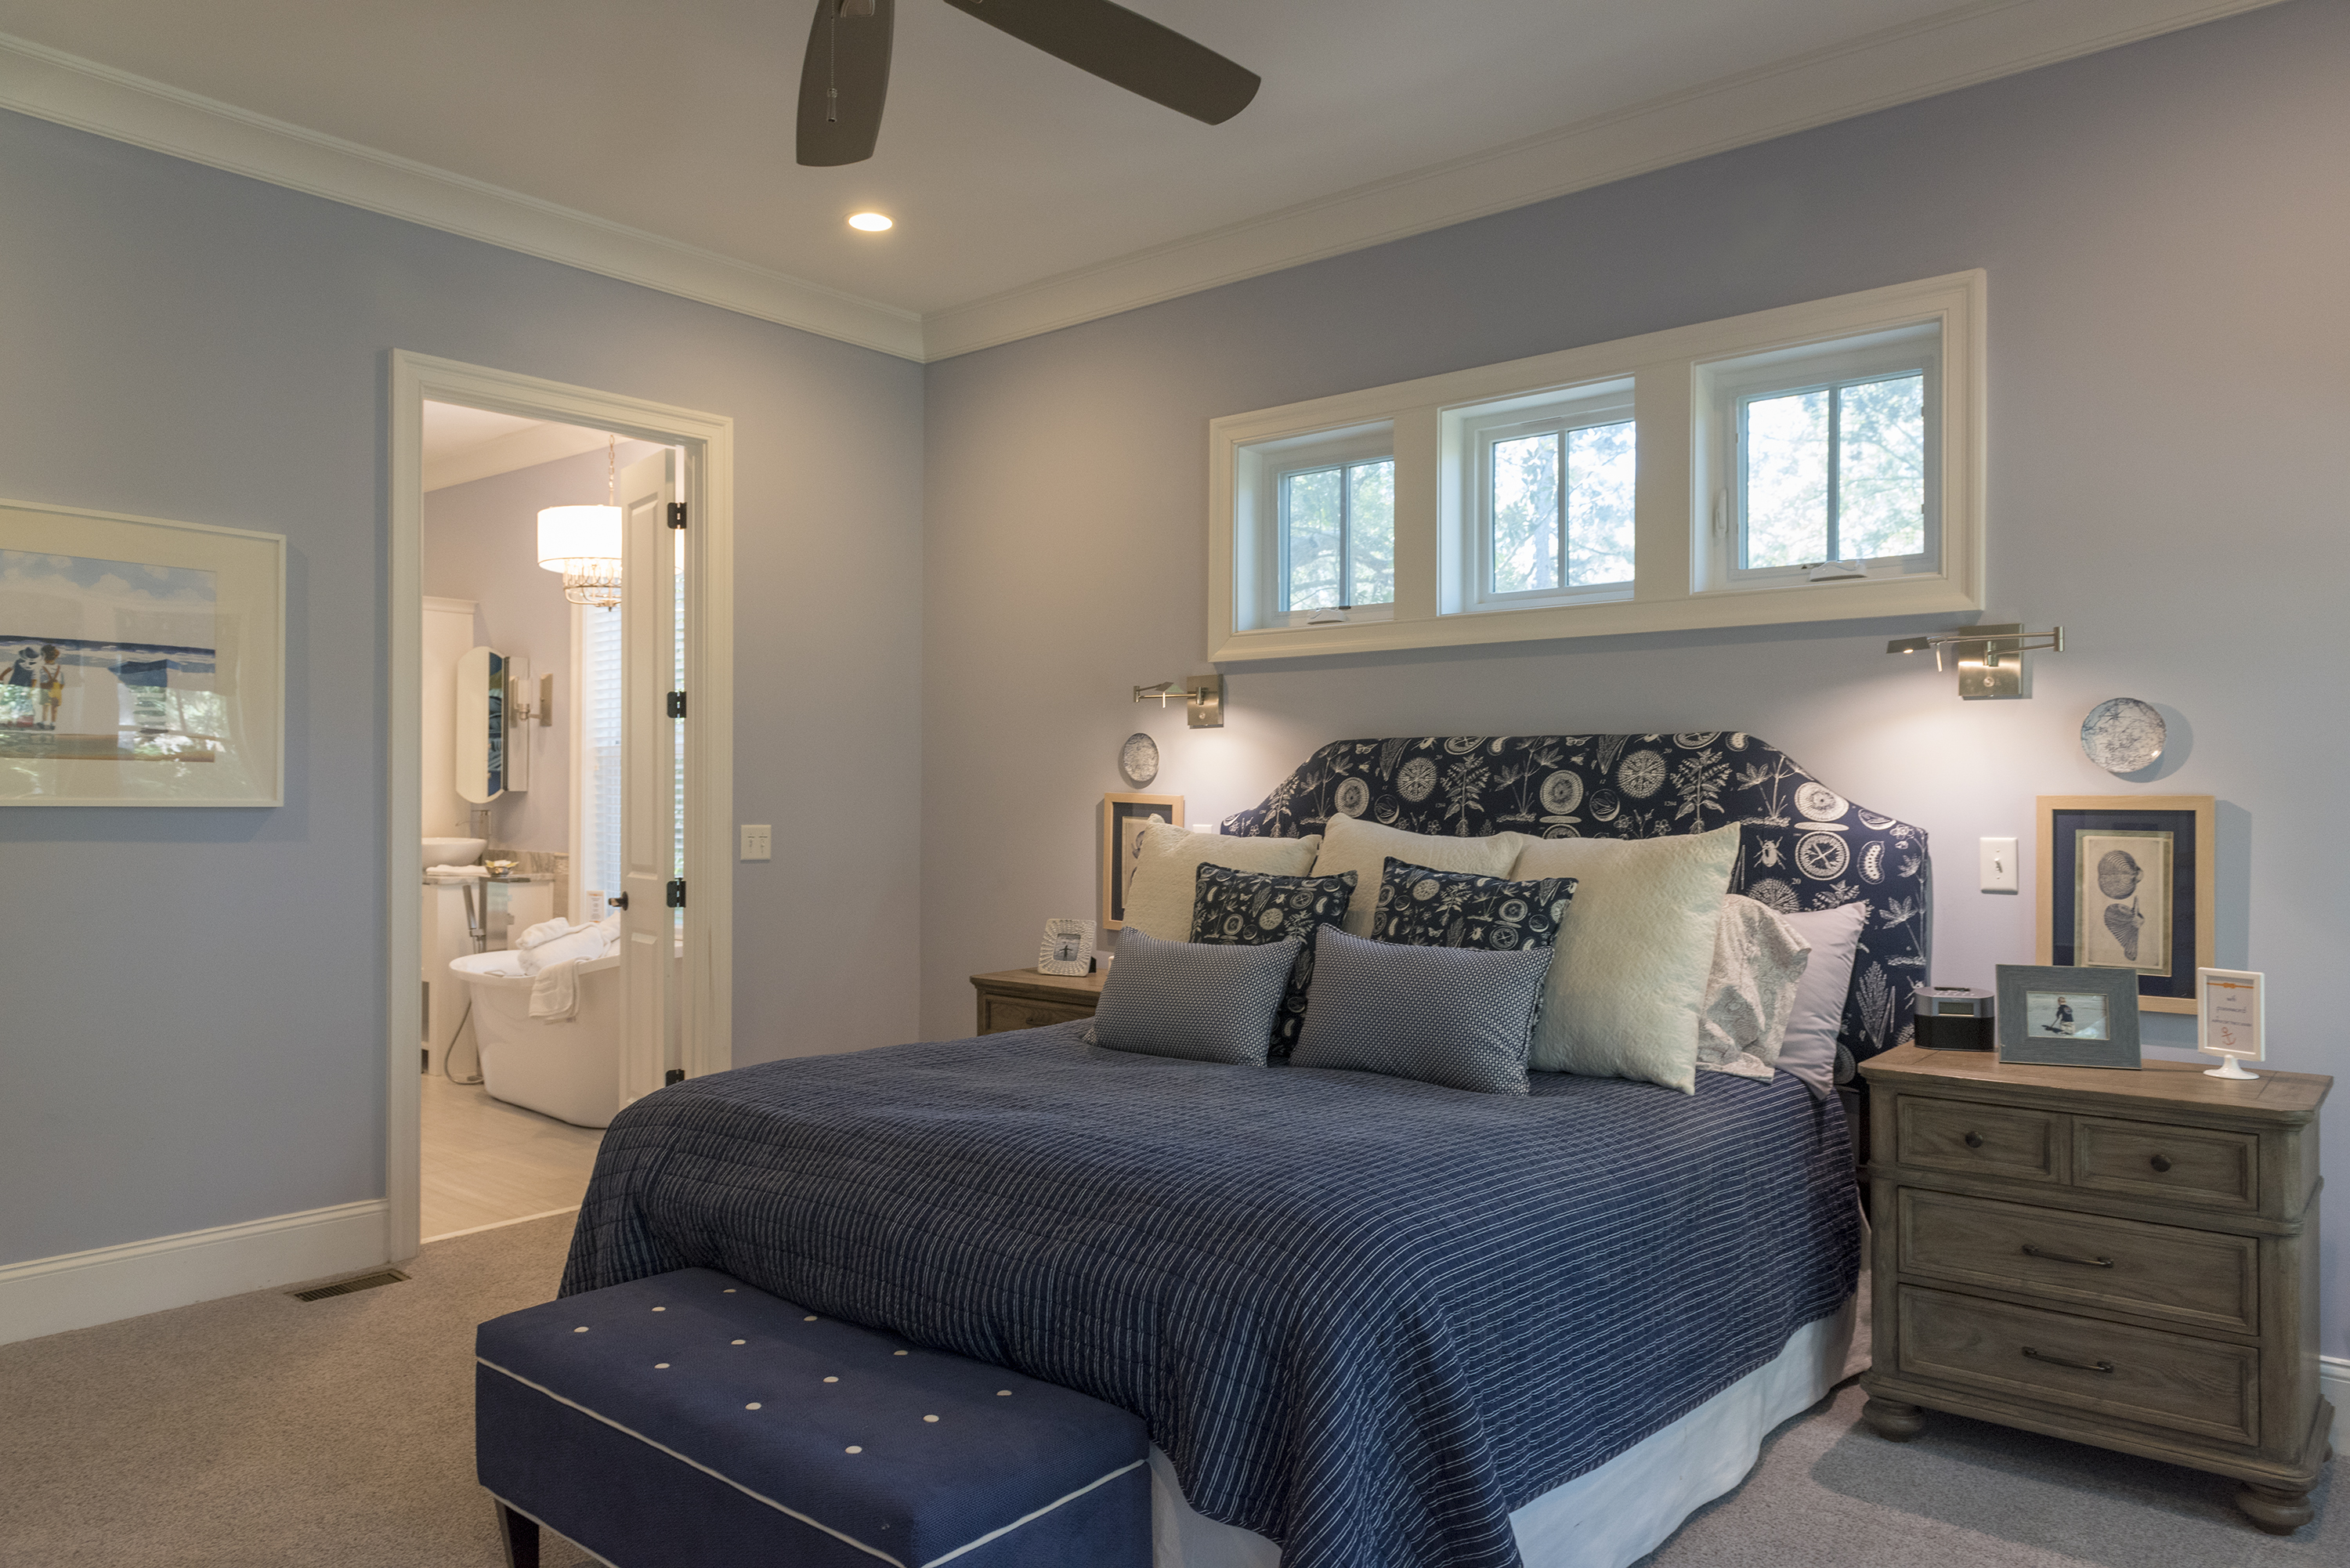 On the 1st floor is the master suite. It has a king bed & en suite bath.